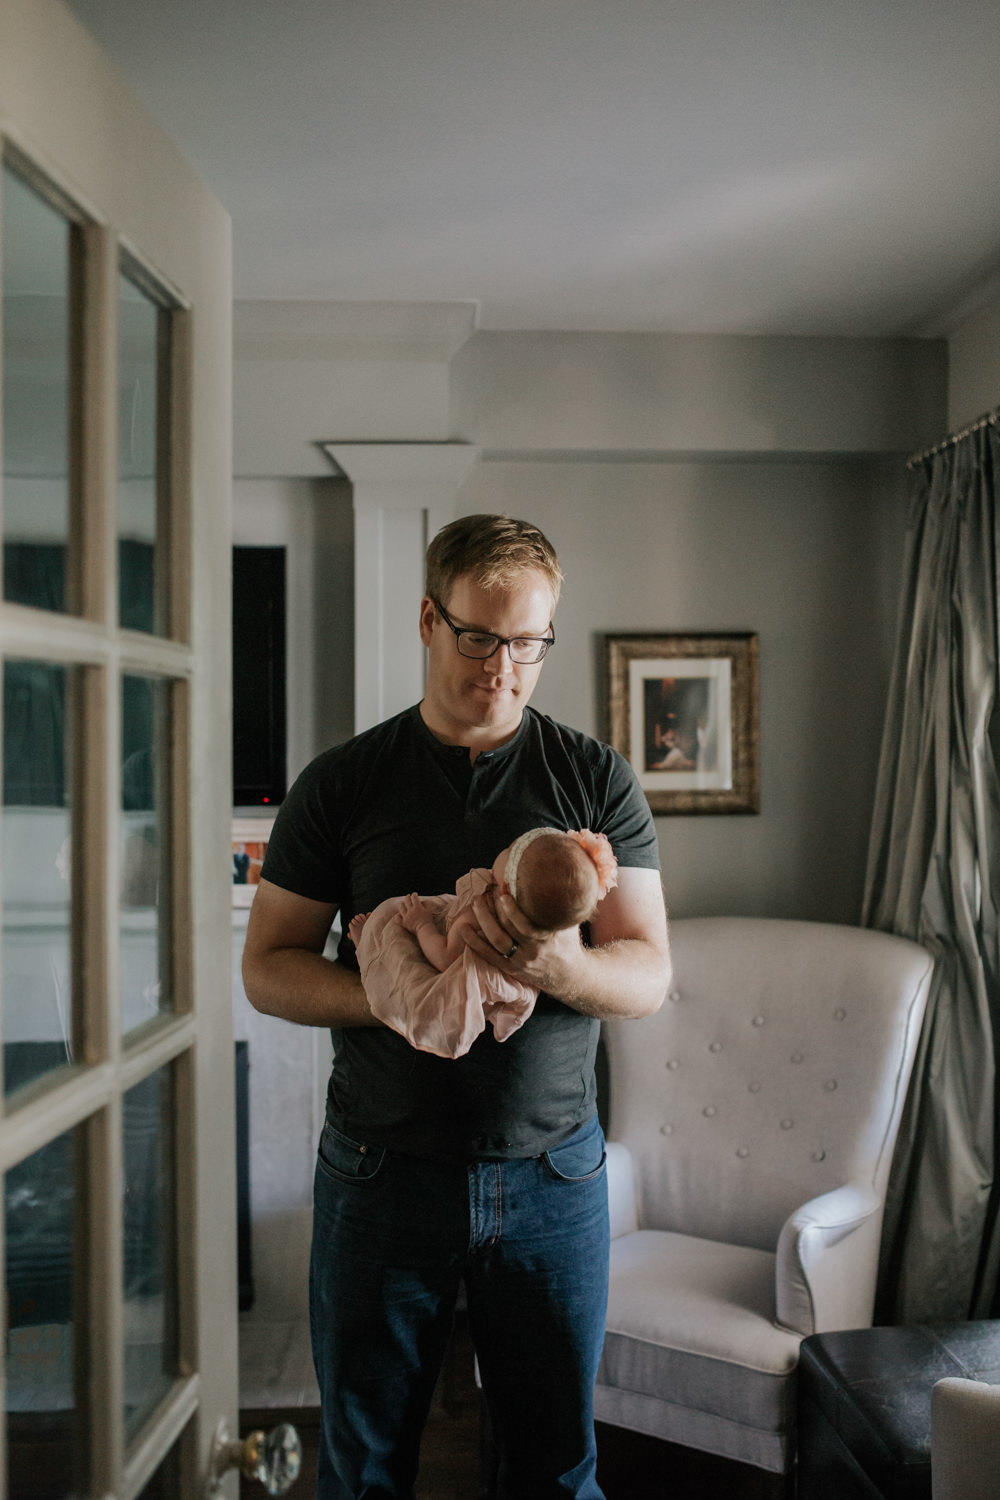 first time dad standing in living room holding 2 week old baby girl in blush dress and flower headband, smiling at daughter - York Region Lifestyle Photos